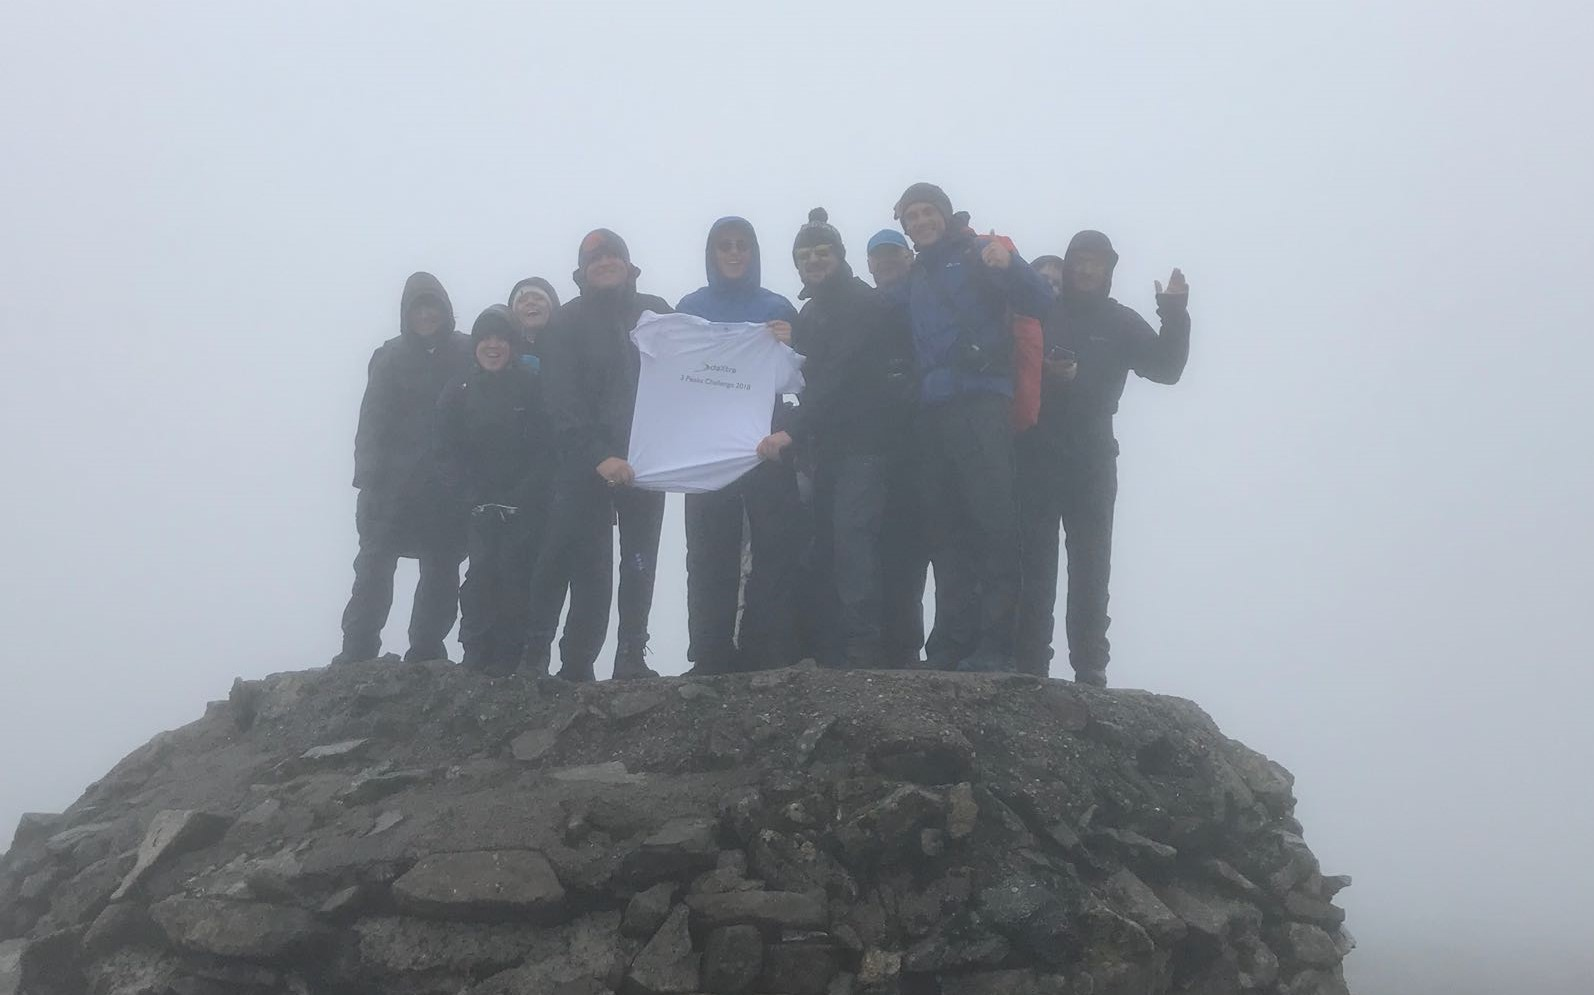 DaXtra at the top of Ben Nevis